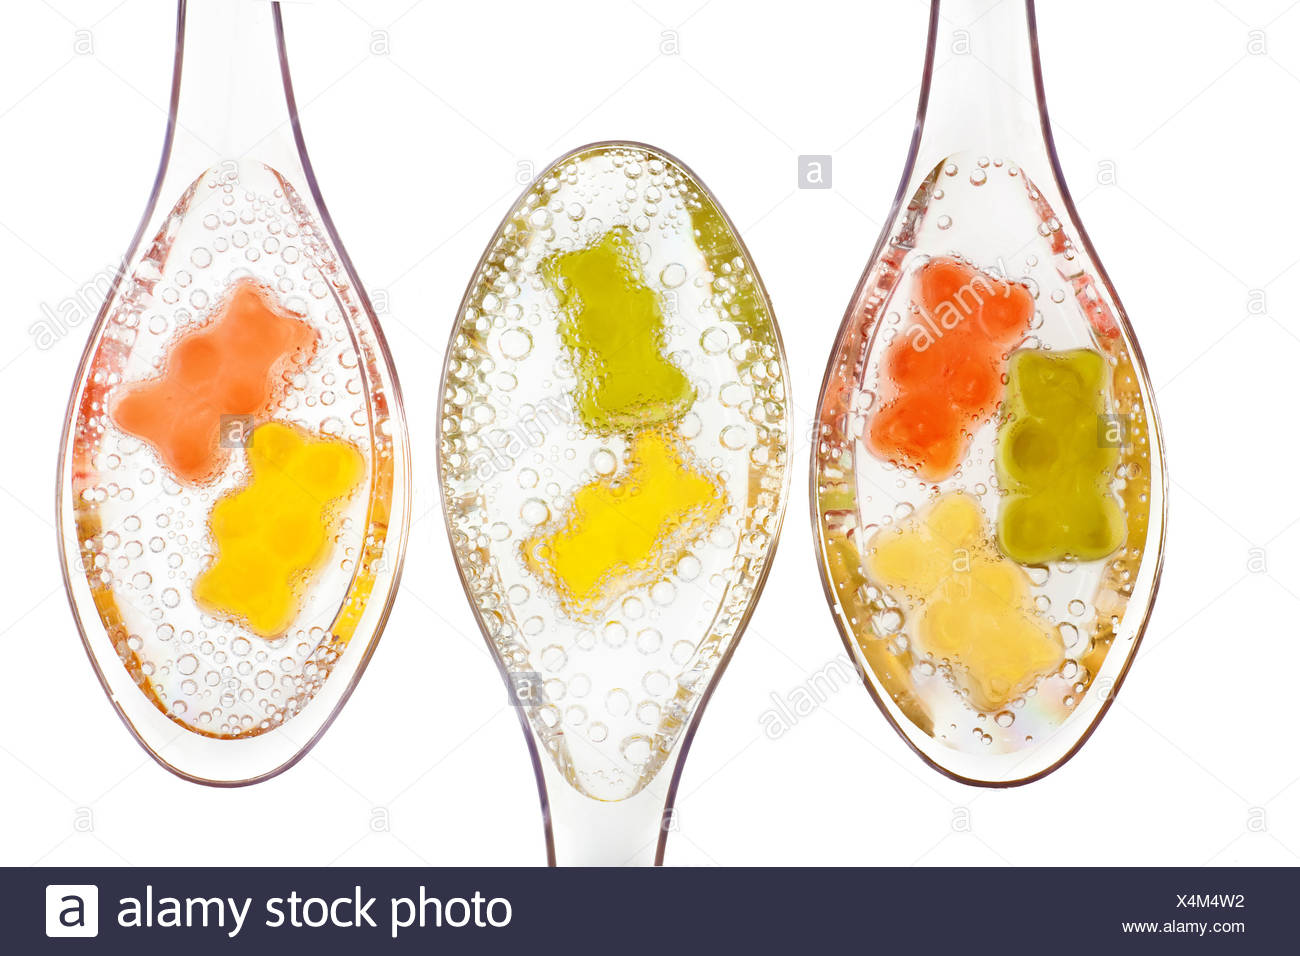 Gummi Bears in water on transparent spoons - Stock Image